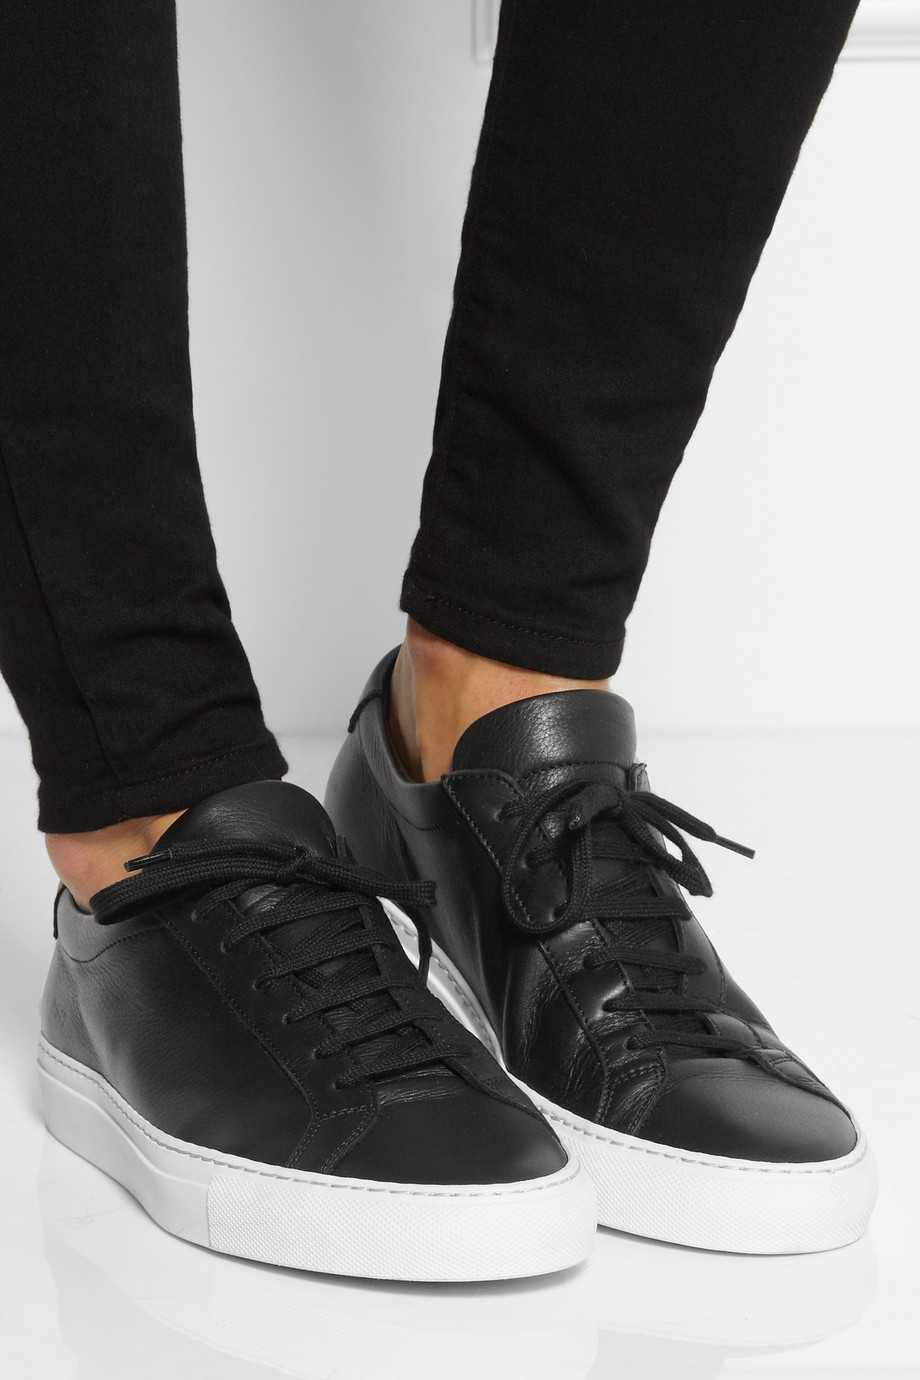 Lyst  Common projects Achilles Leather Sneakers in Black